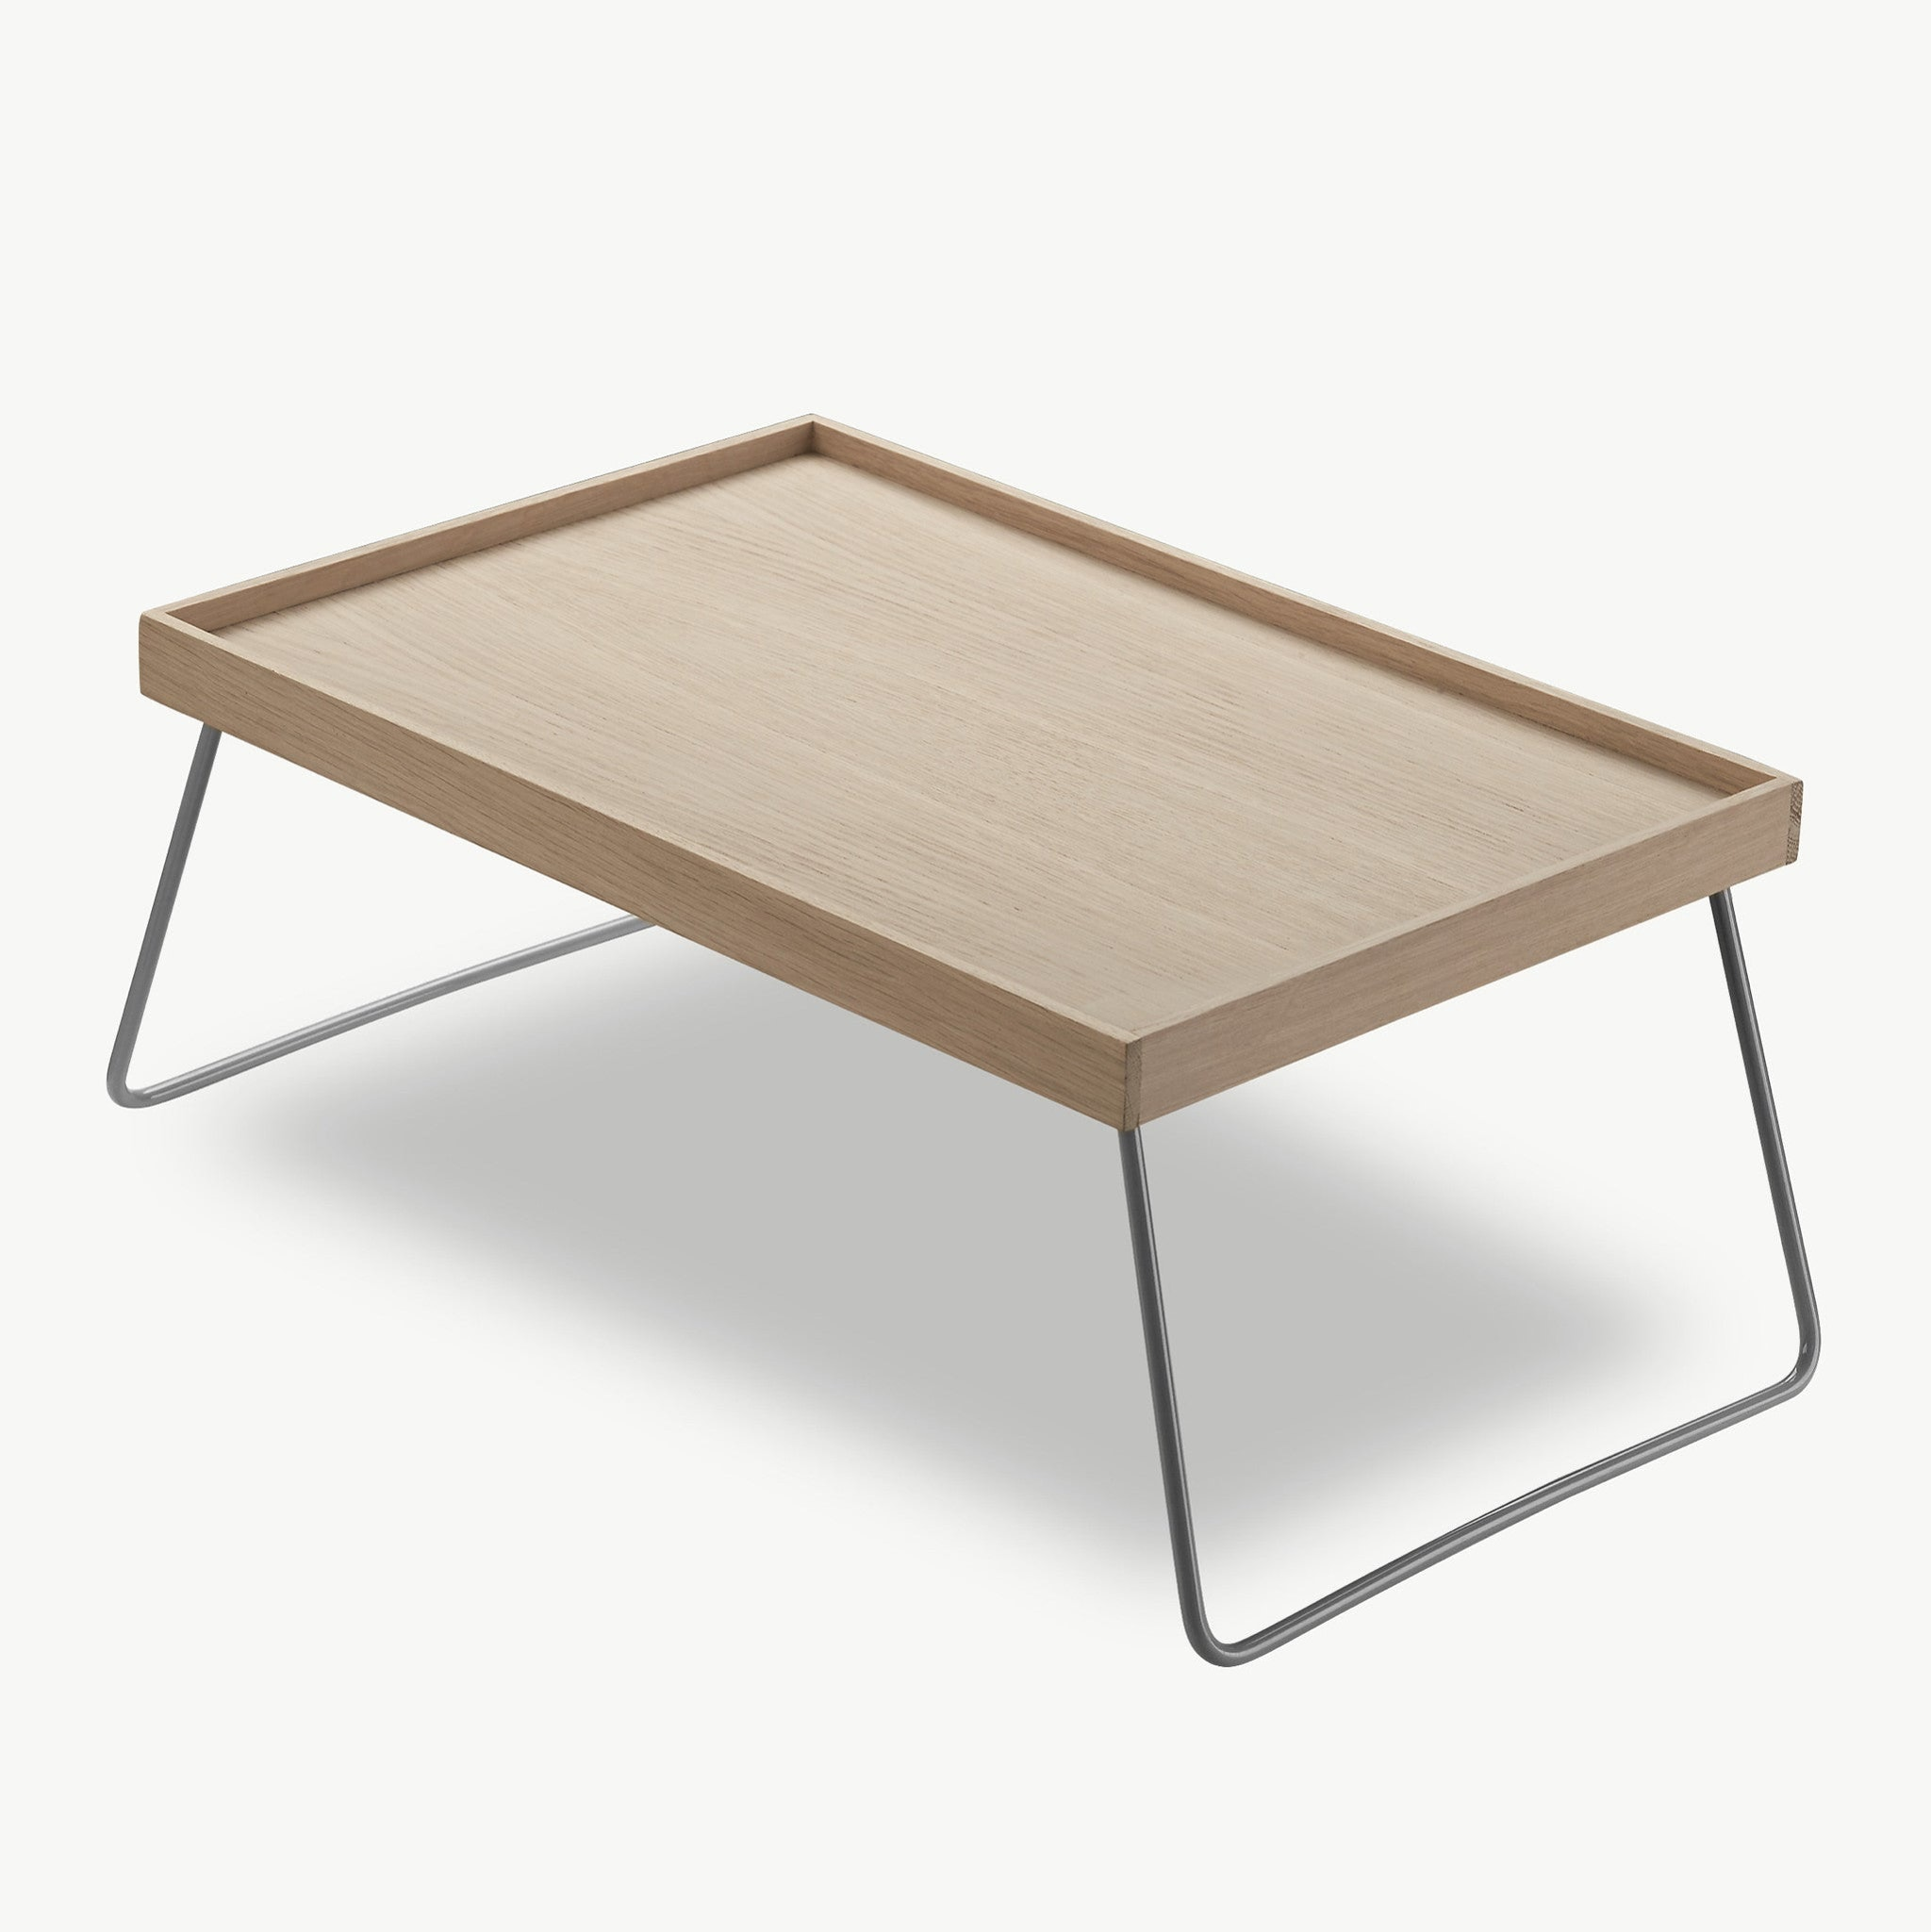 Nomad Table Tray by Skagerak